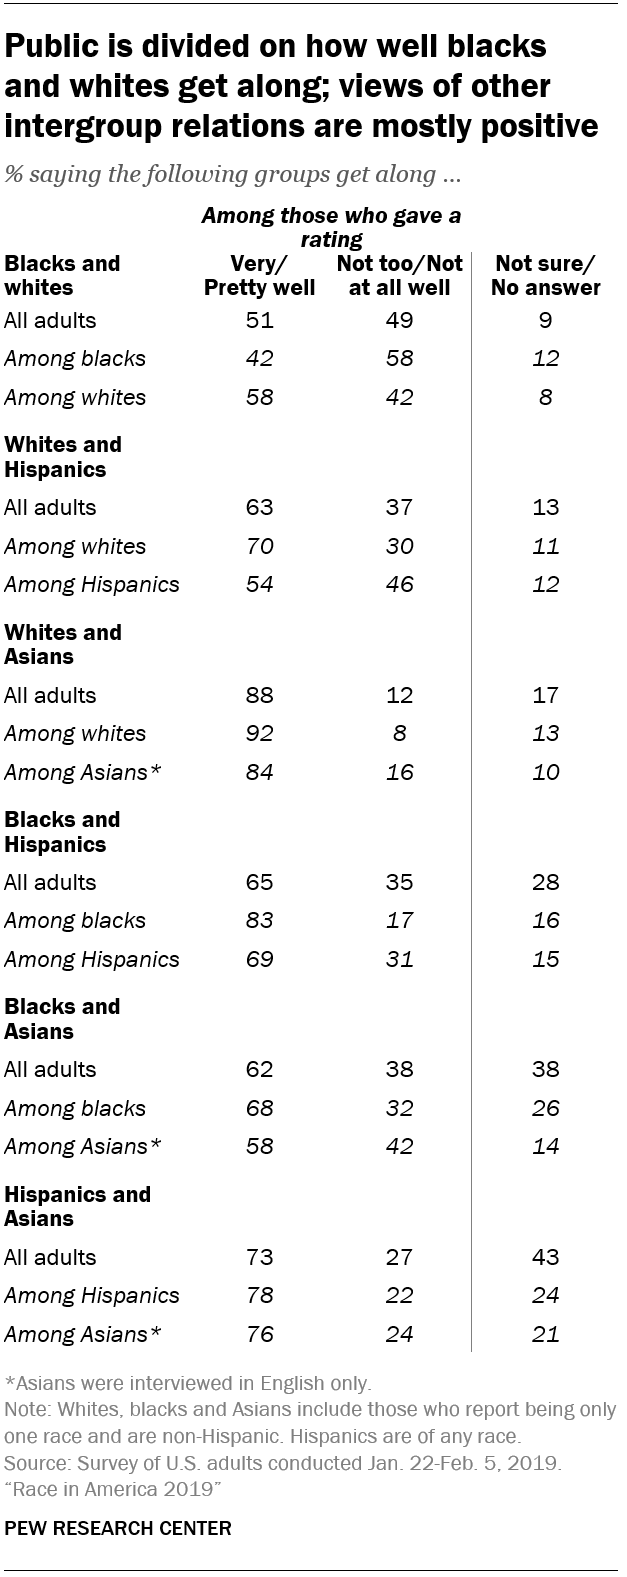 Public is divided on how well blacks and whites get along; views of other intergroup relations are mostly positive